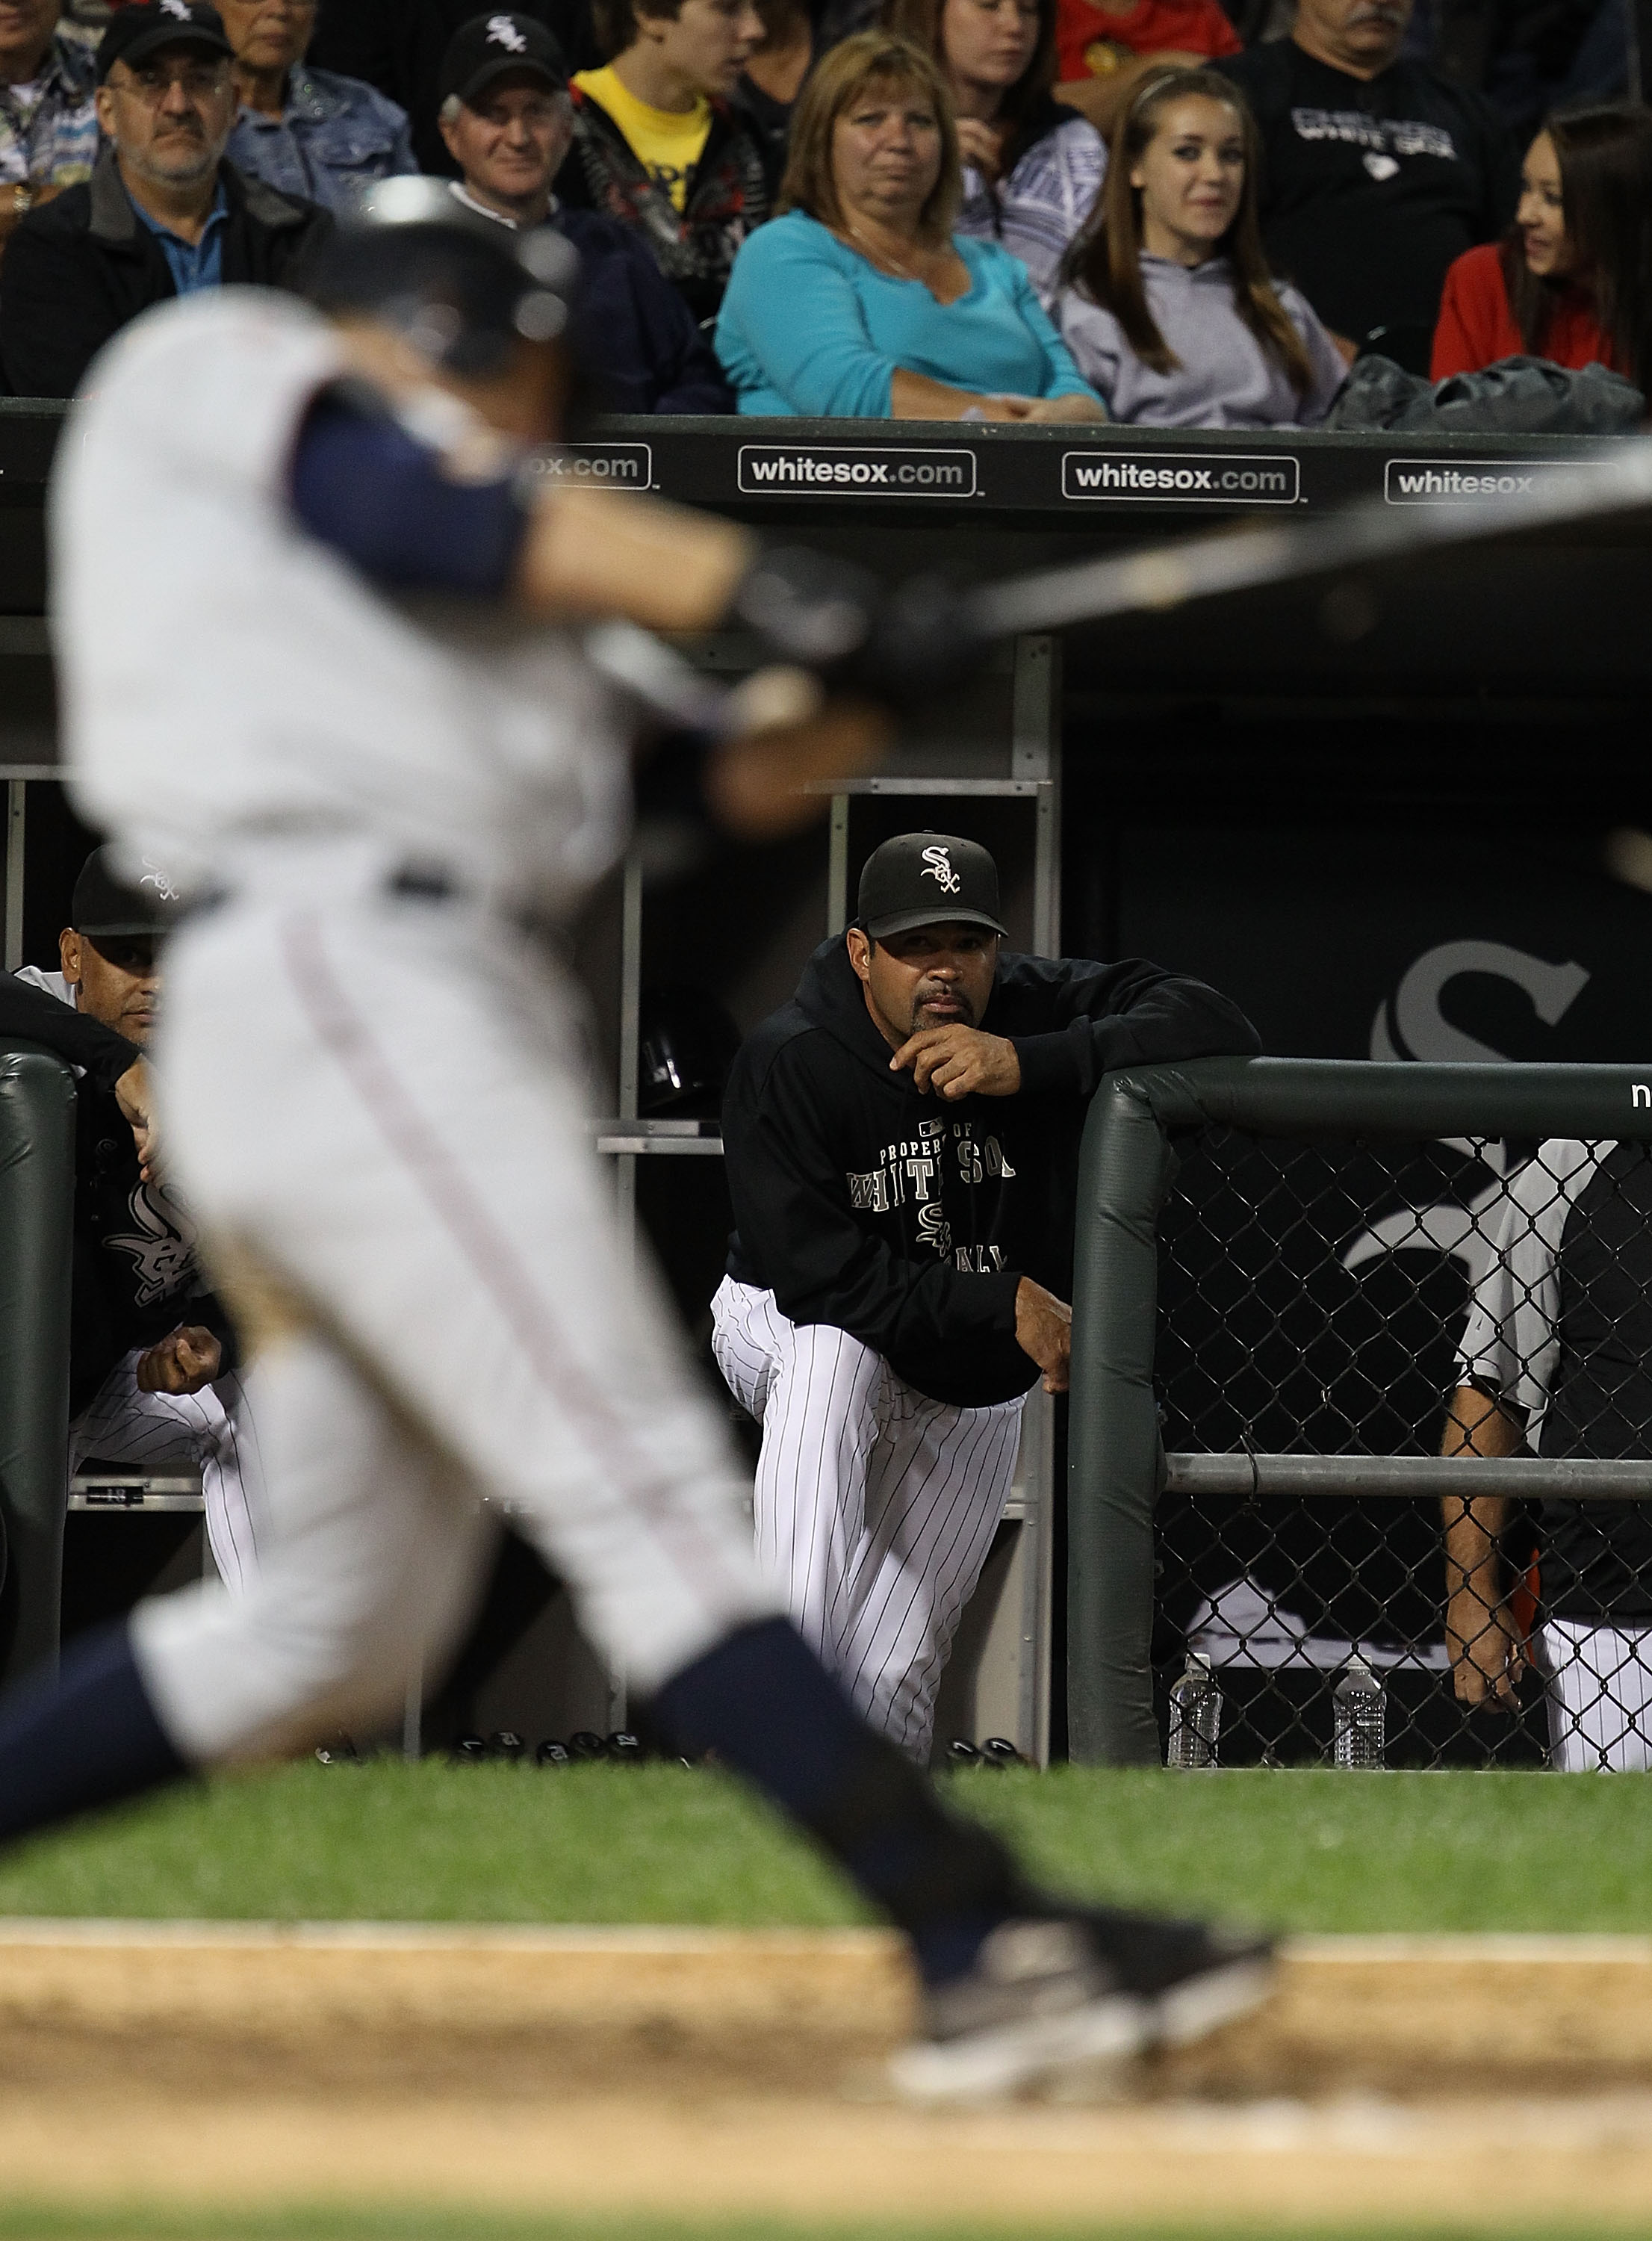 CHICAGO - SEPTEMBER 14: Manager Ozzie Guillen #13 of the Chicago White Sox watches as Jim Thome #25 of the Minnesota Twins takes a swing at U.S. Cellular Field on September 14, 2010 in Chicago, Illinois. (Photo by Jonathan Daniel/Getty Images)